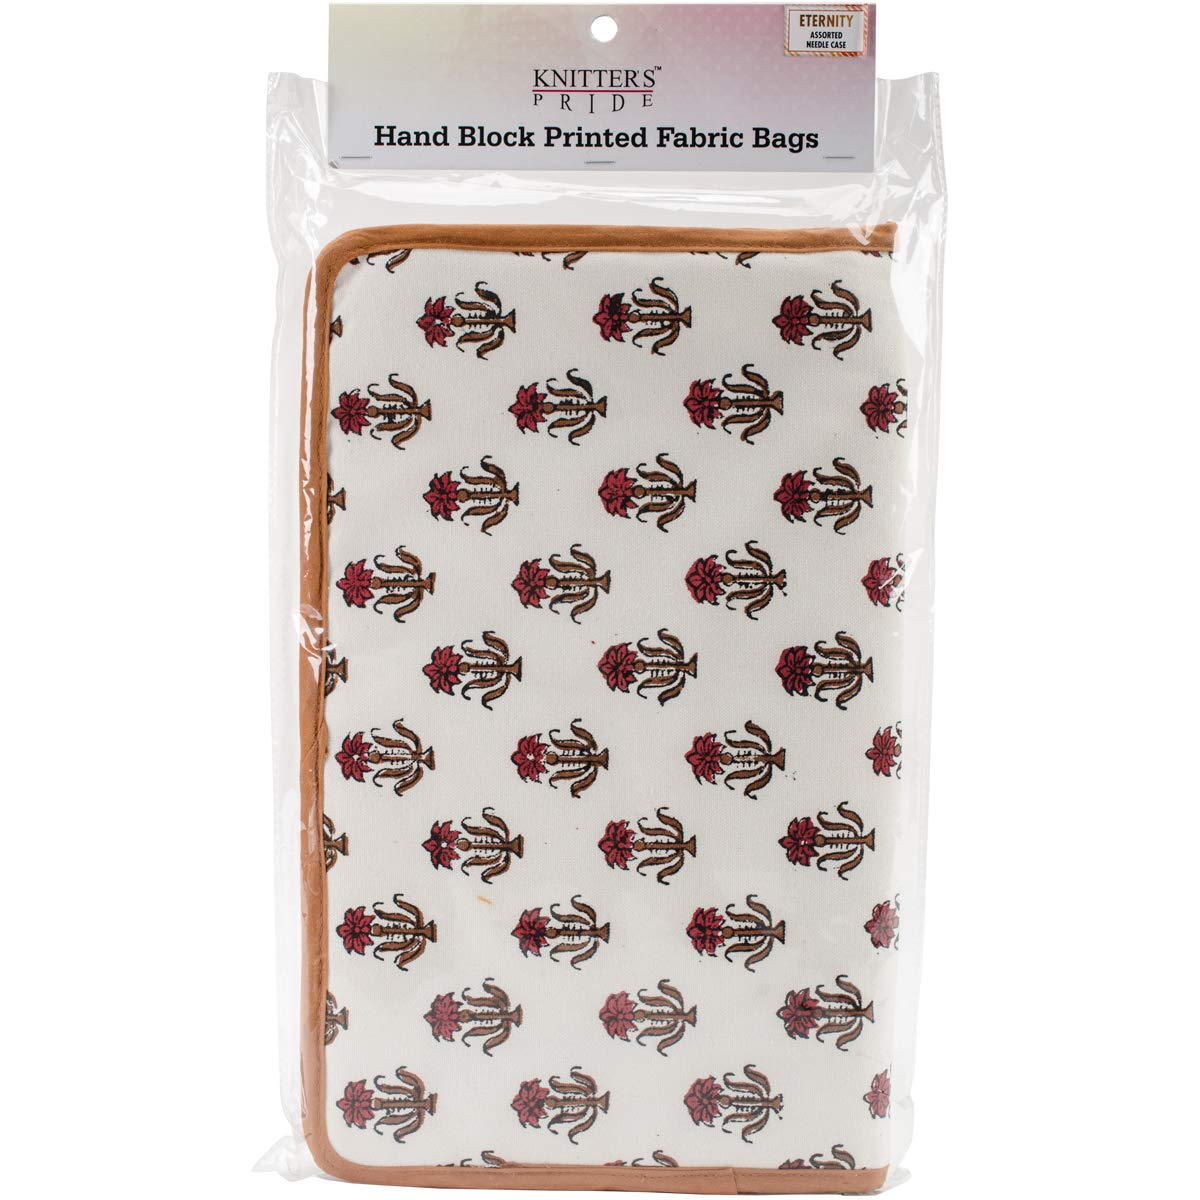 Knitter's Pride 810013 Eternity Assorted Needle Case